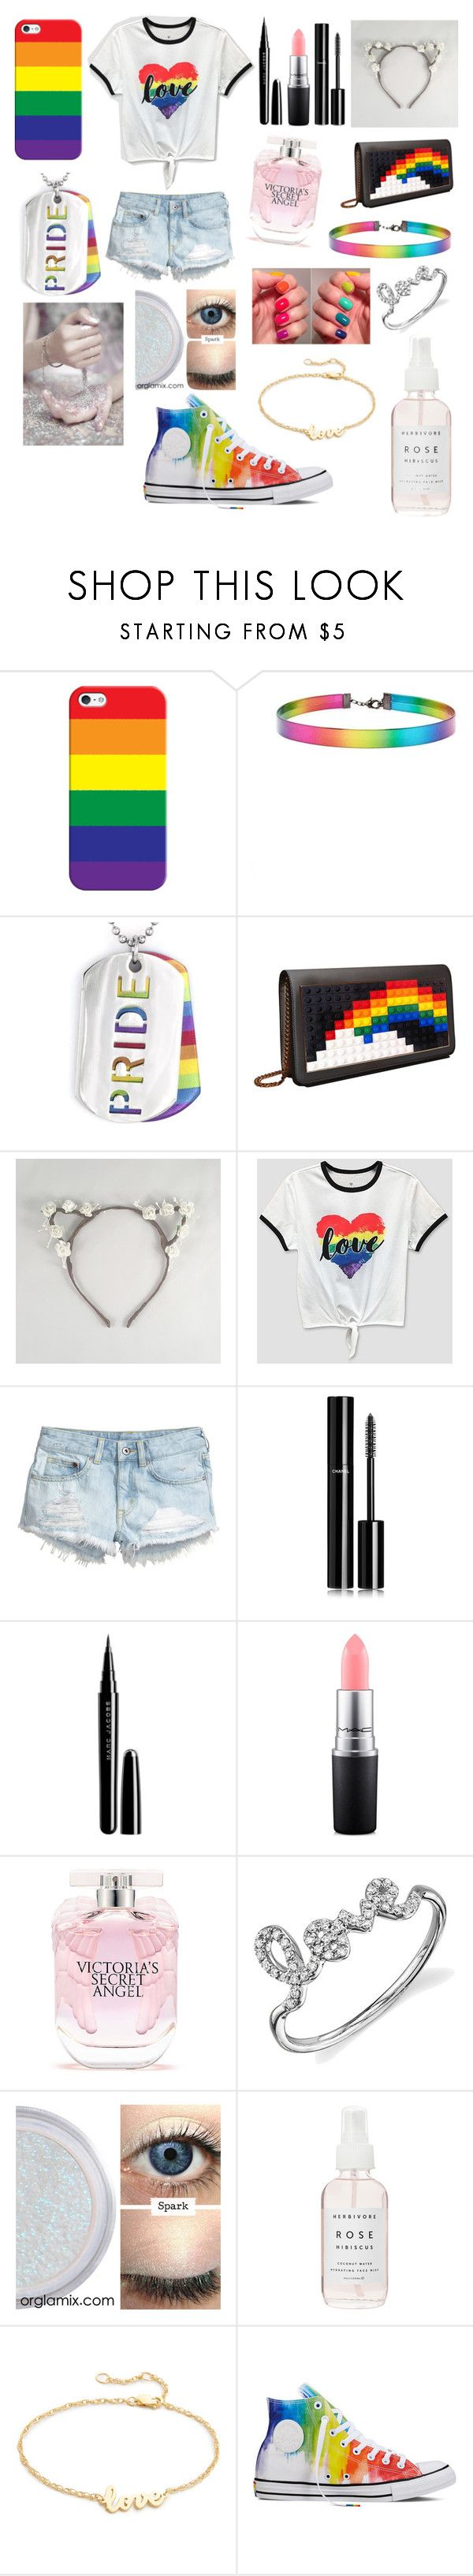 """""""Pride ❤️💛💚💙💜"""" by kyliea26 ❤ liked on Polyvore featuring Casetify, Forever 21, West Coast Jewelry, Les Petits Joueurs, H&M, Chanel, Marc Jacobs, MAC Cosmetics, Victoria's Secret and Sydney Evan"""